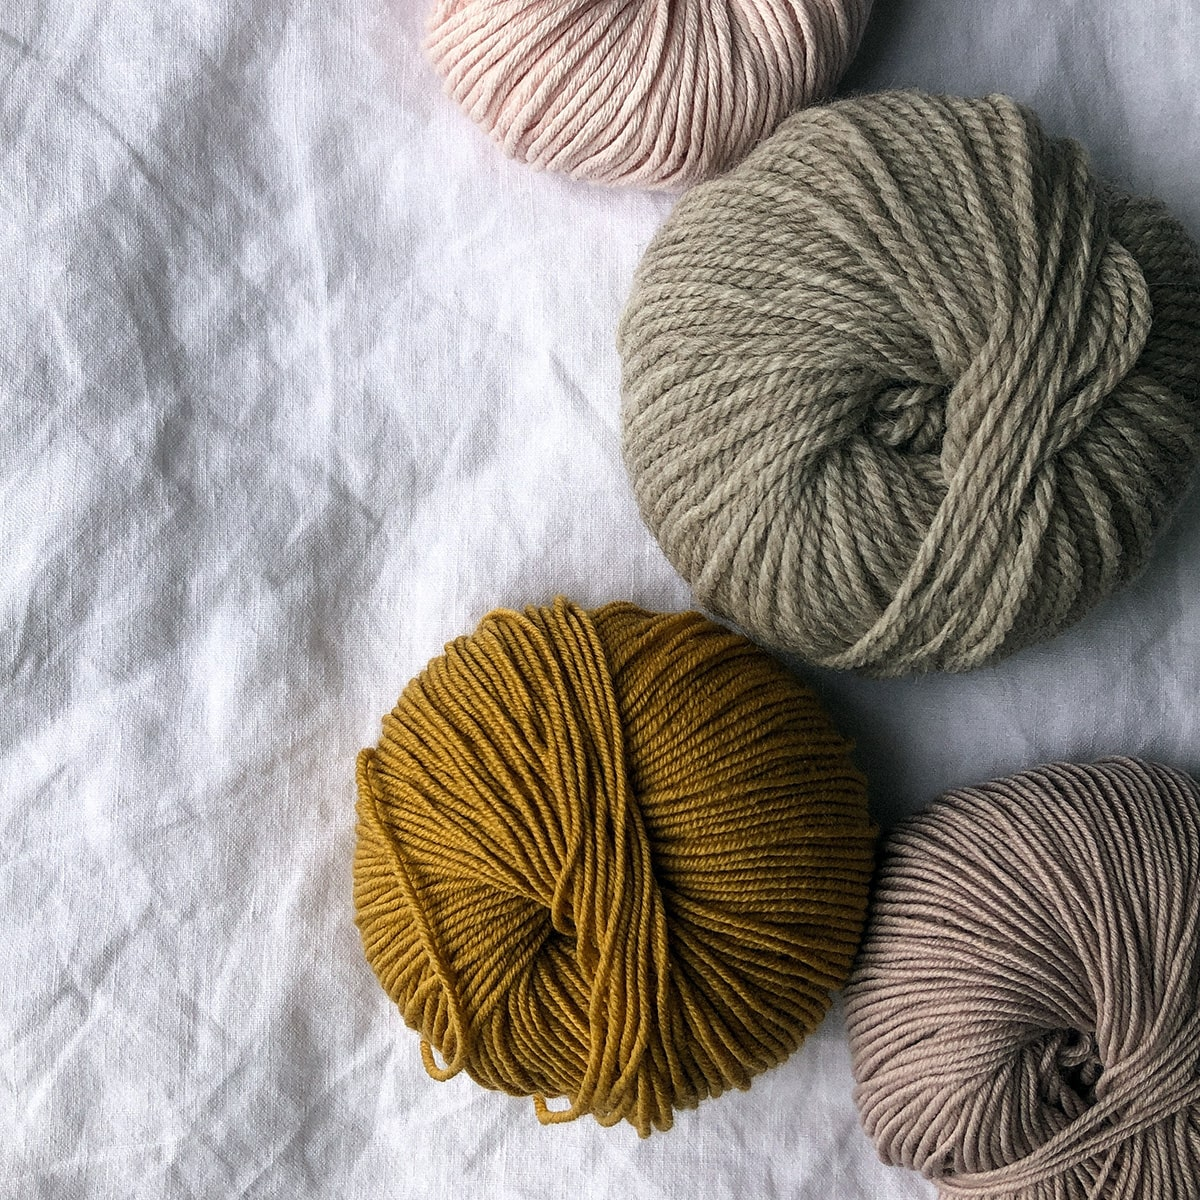 Image of Cotton Yarn for Making Your Own Sparklers